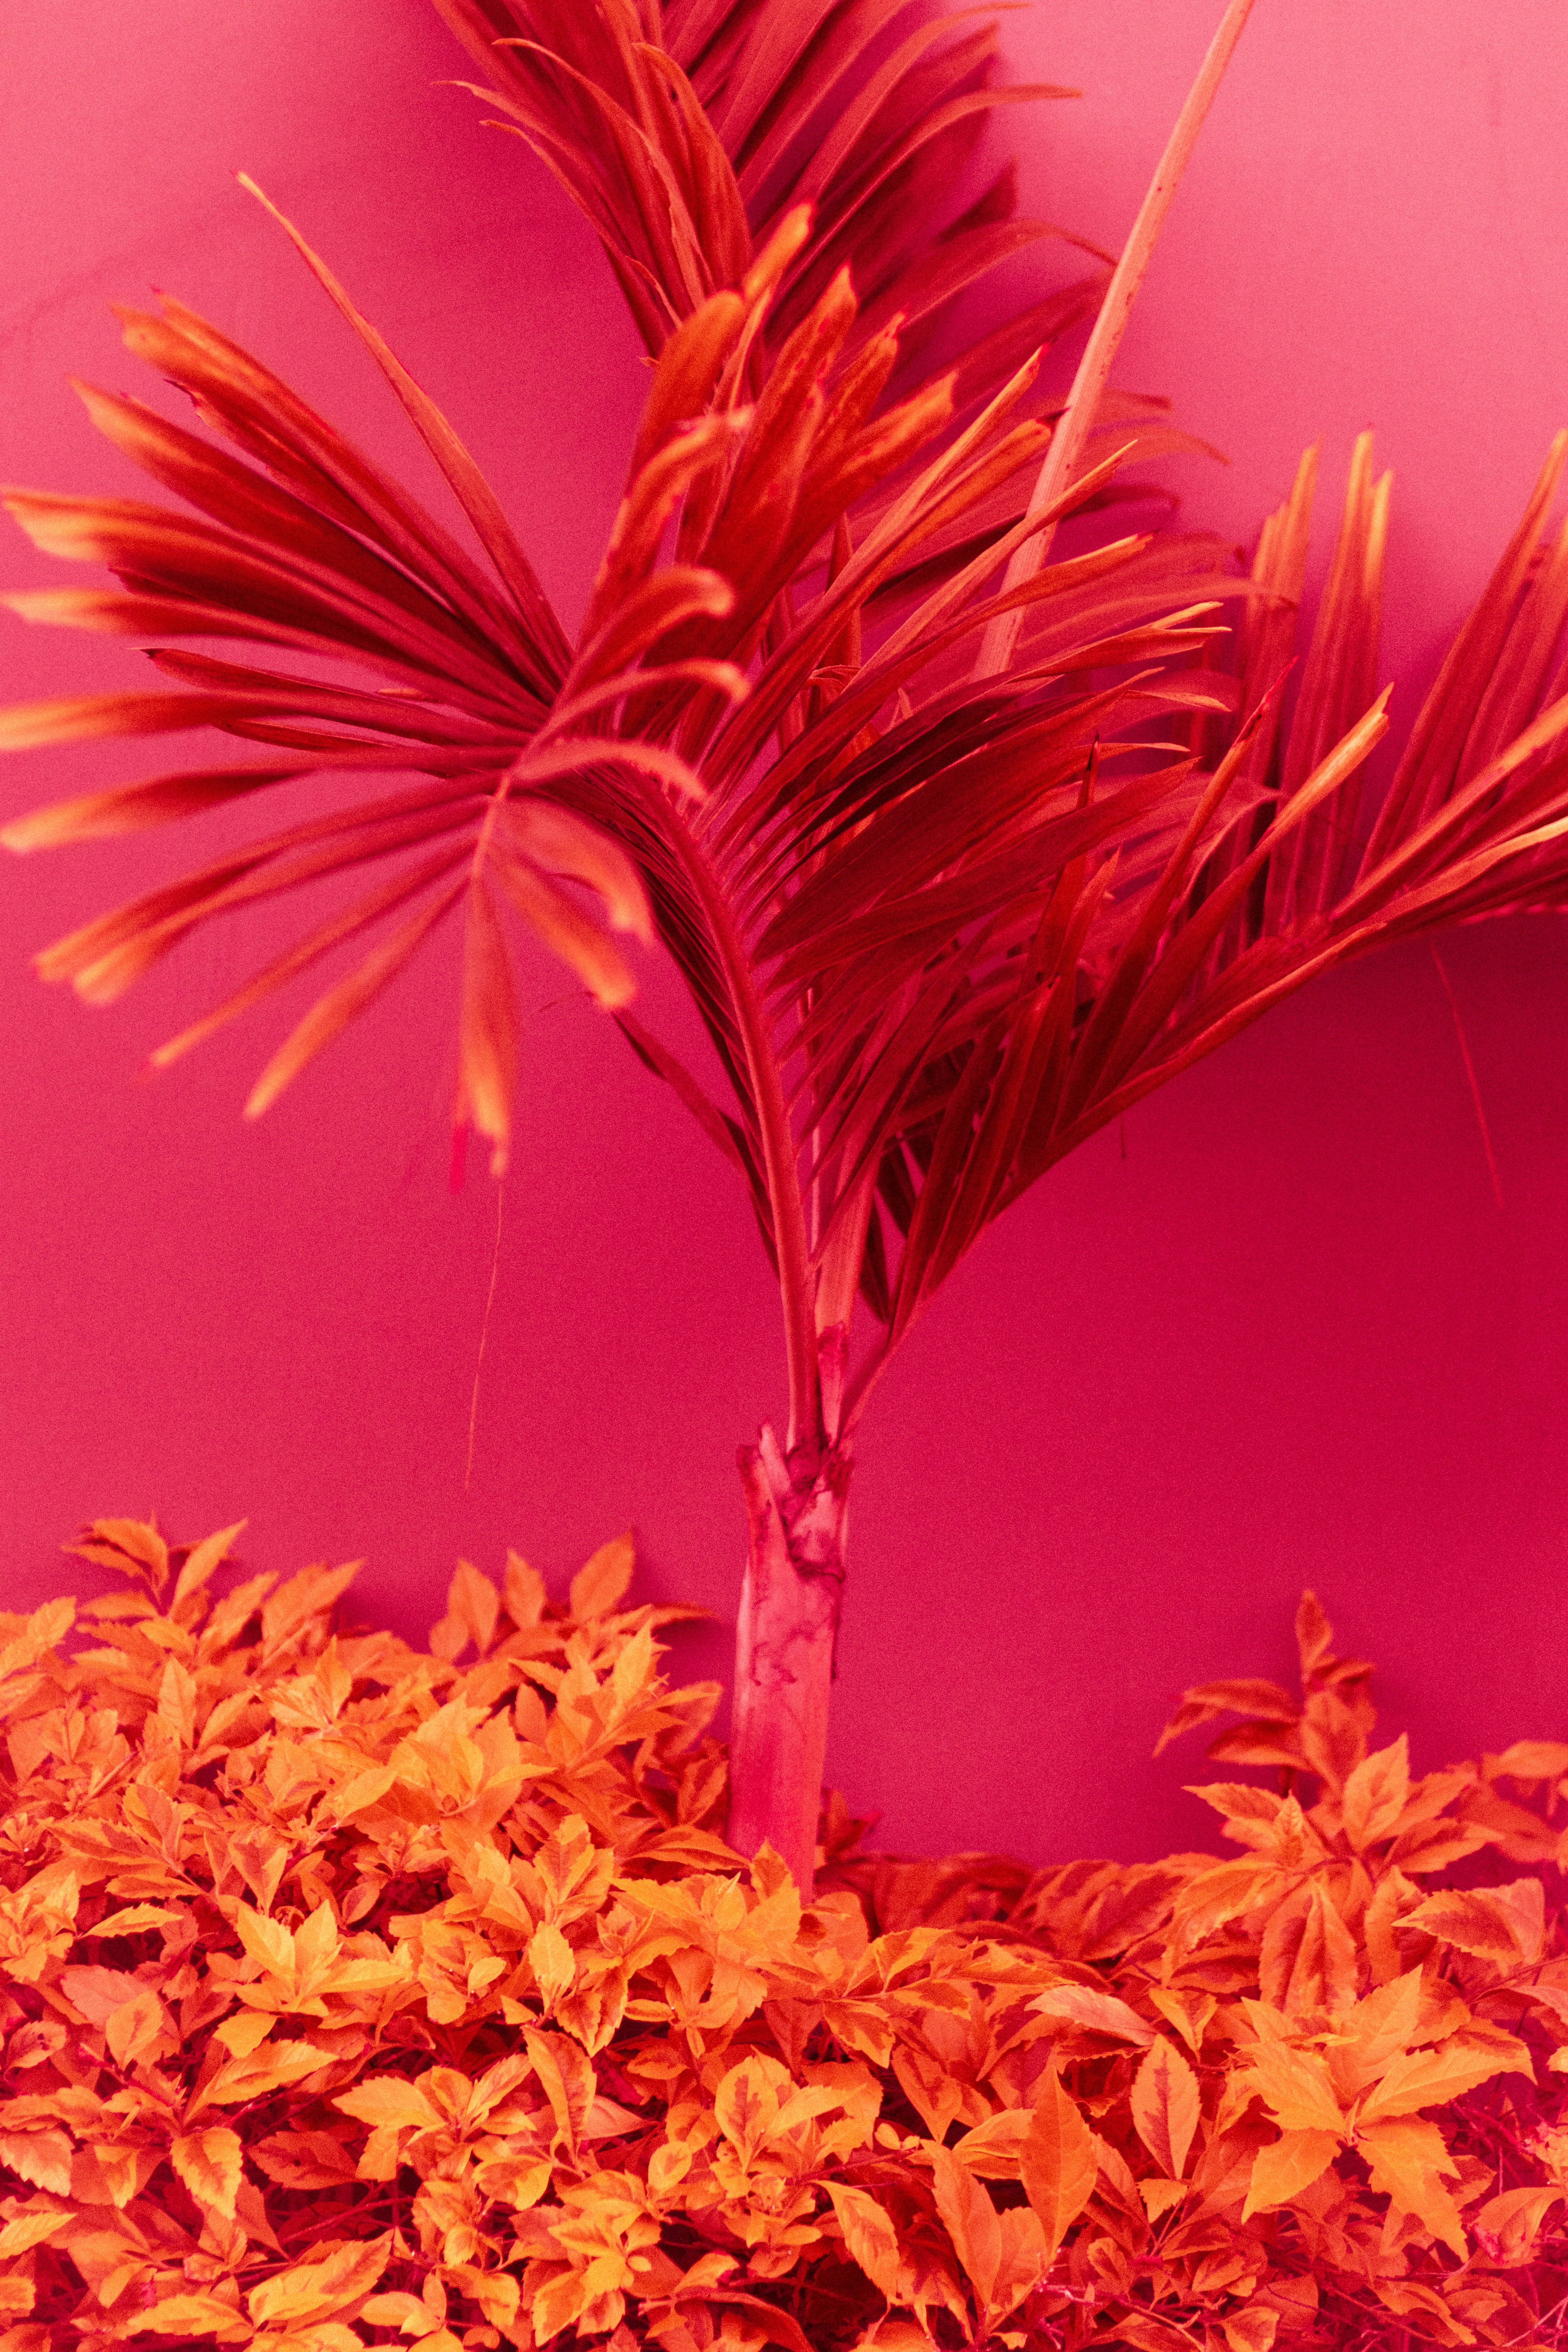 A fern plant lit in yellow against a pink background